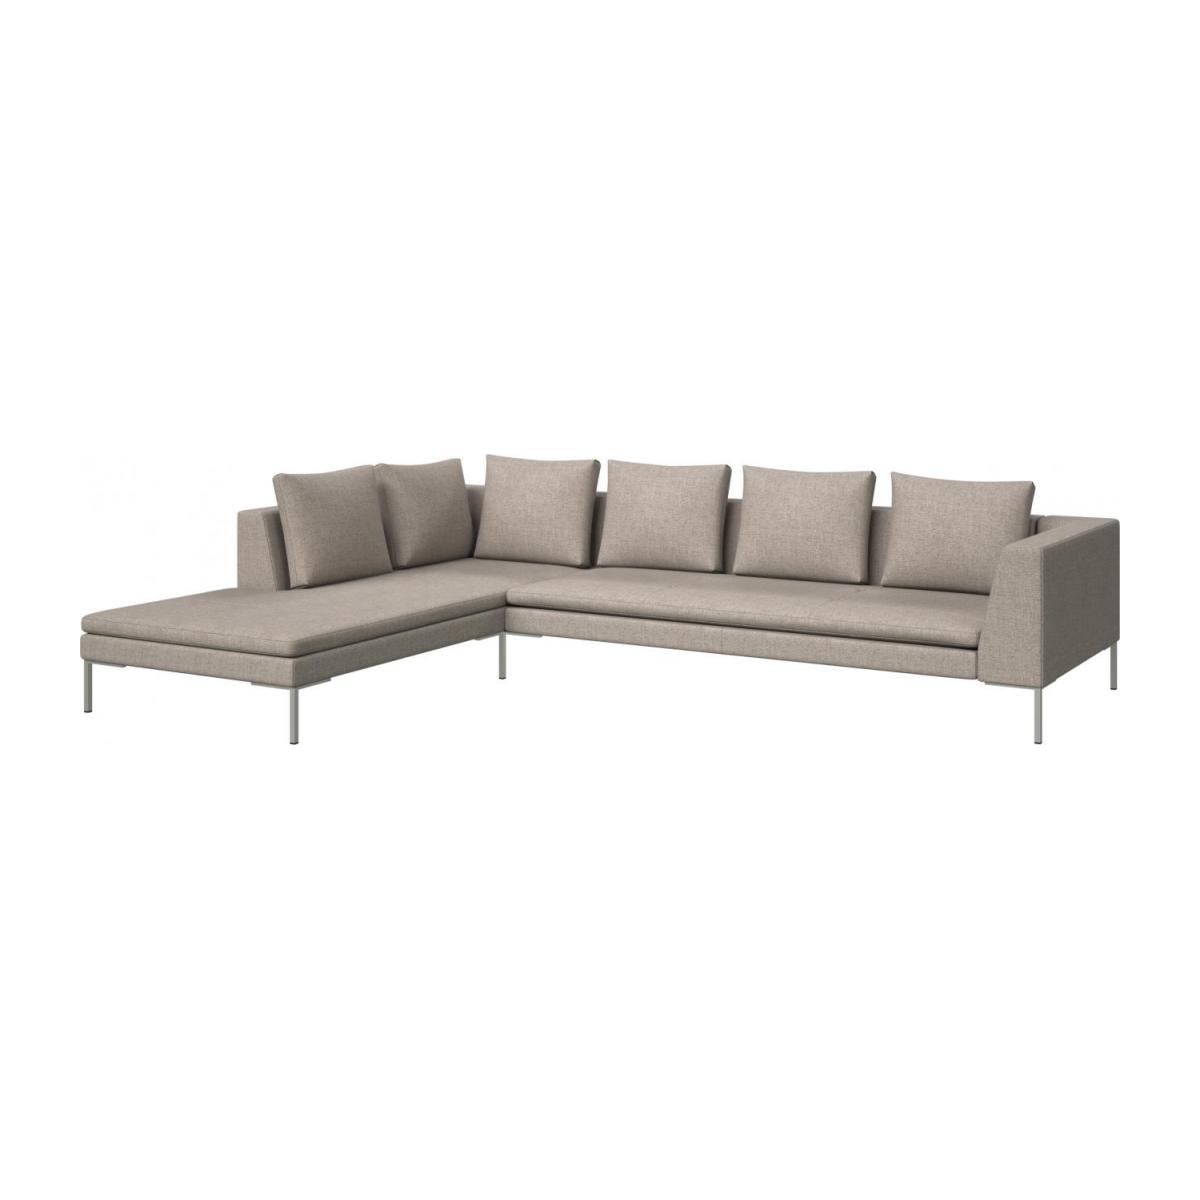 Montino 3 seater sofa with chaise longue on the left in Lecce fabric, nature